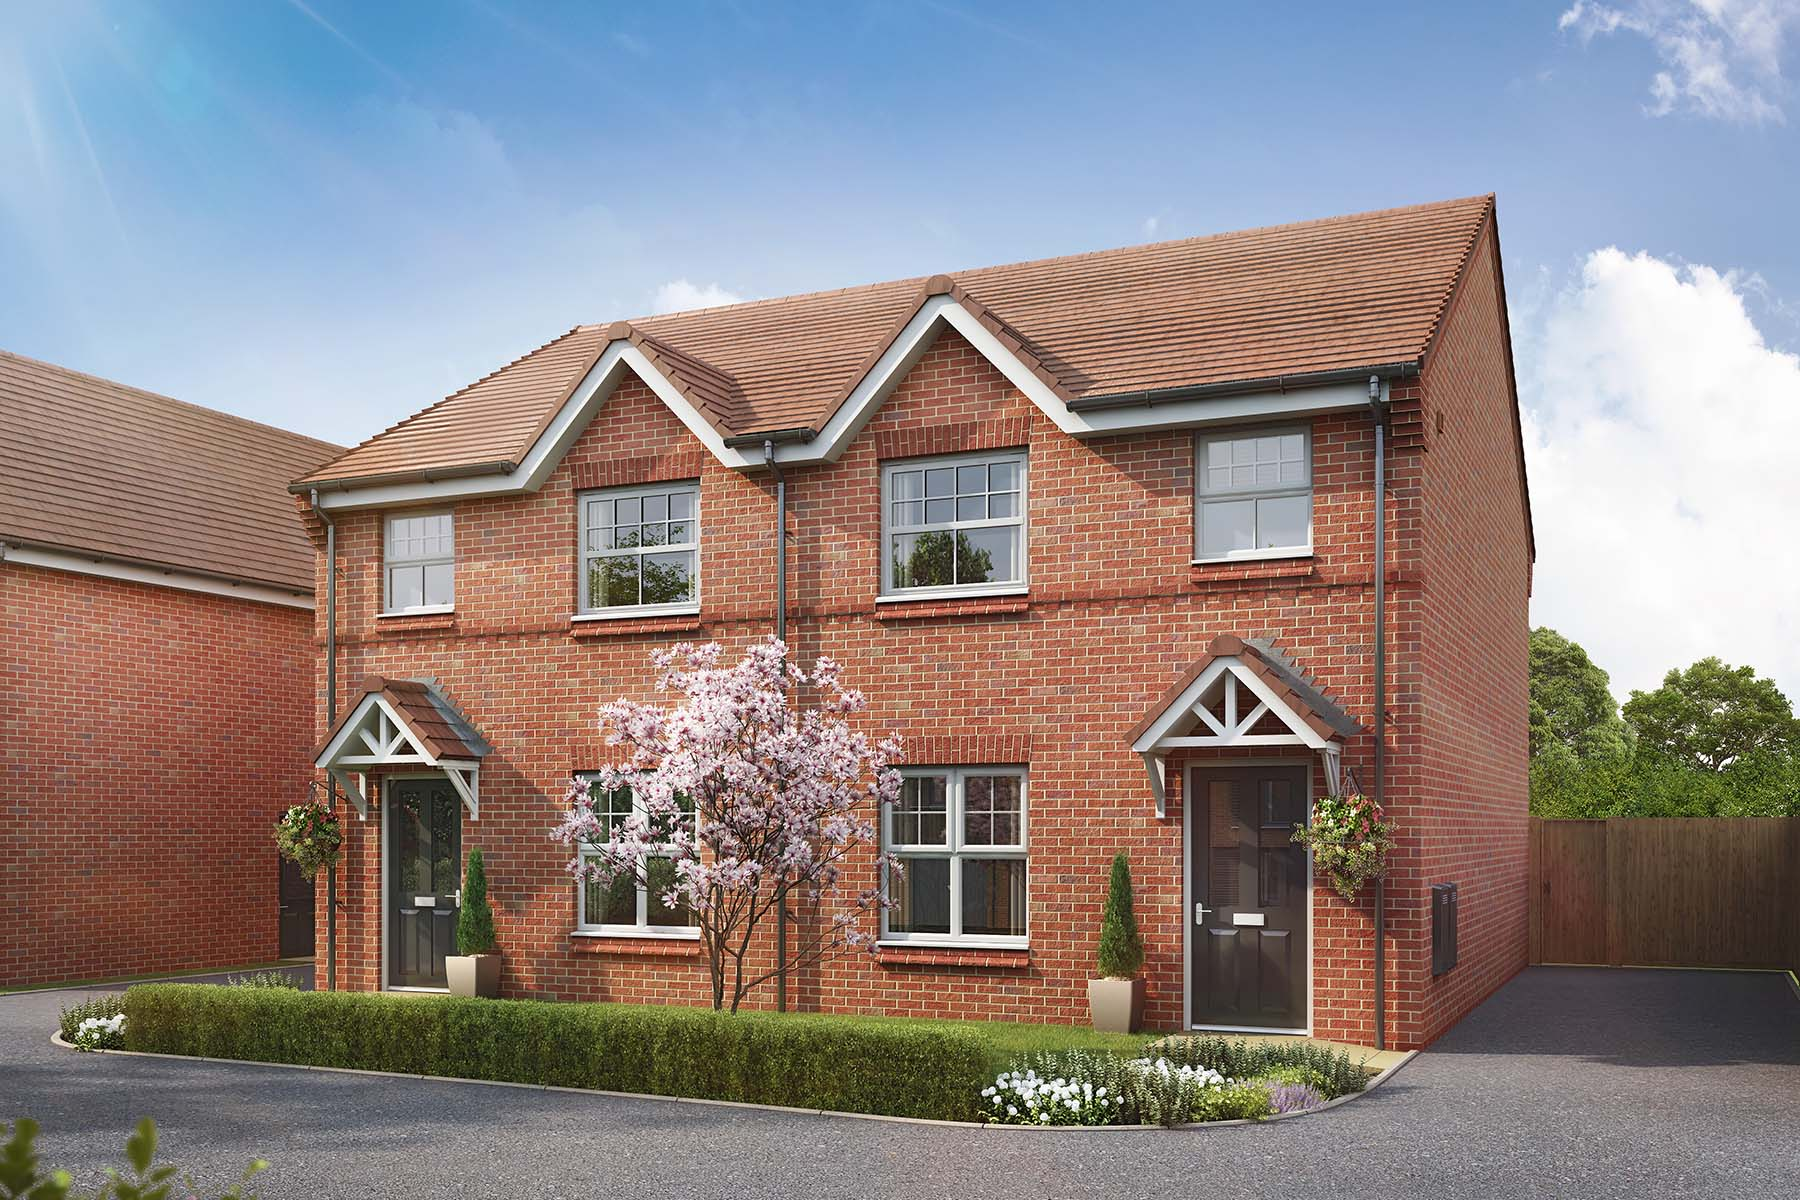 CGI-Mulberry-Lane-Gosford-TA34-L1-Plots-93-94